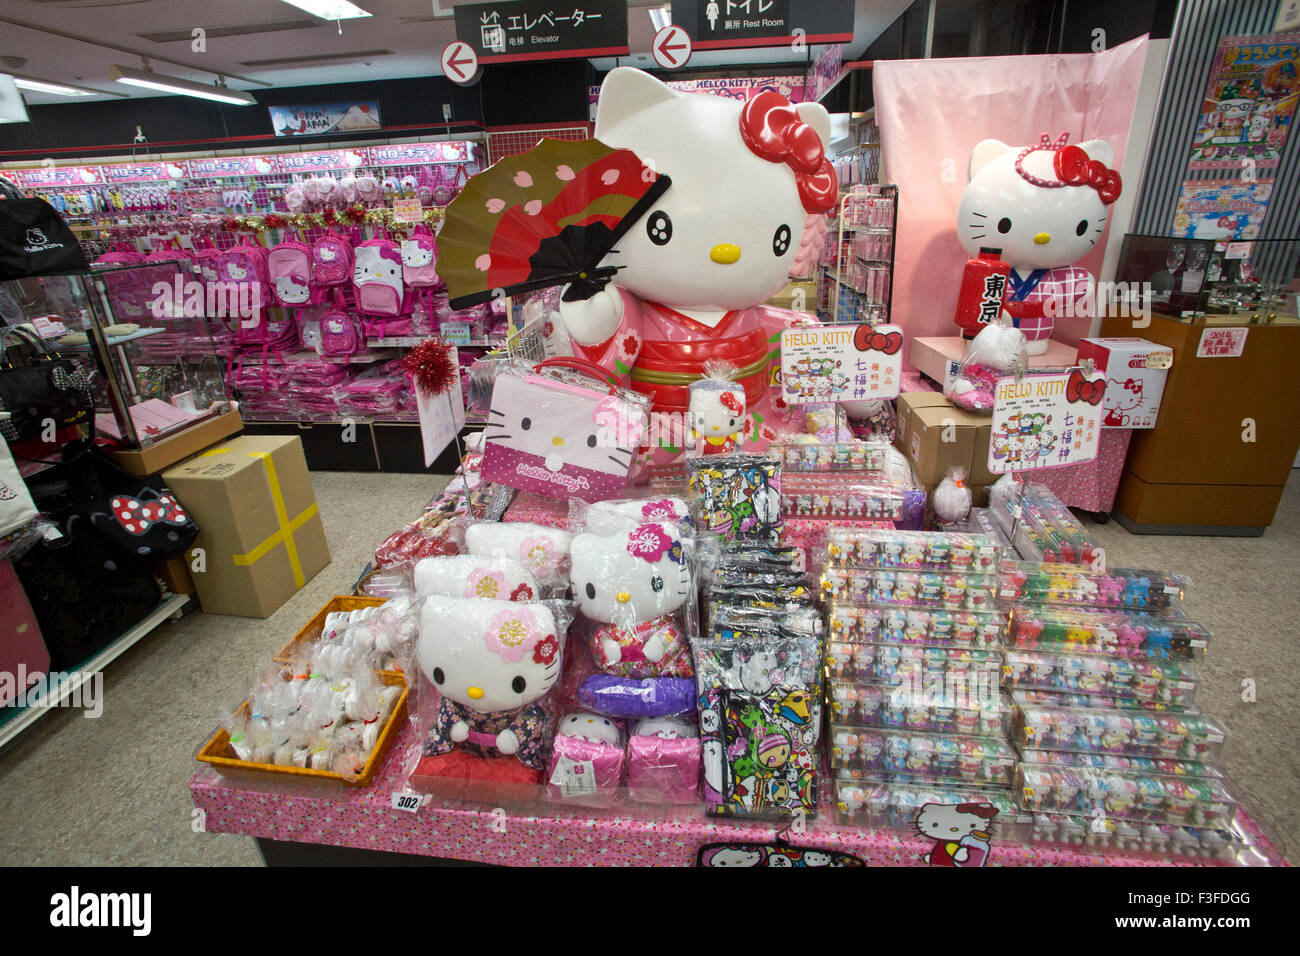 69cce872d5d630 Hello Kitty Shop Photos   Hello Kitty Shop Images - Alamy